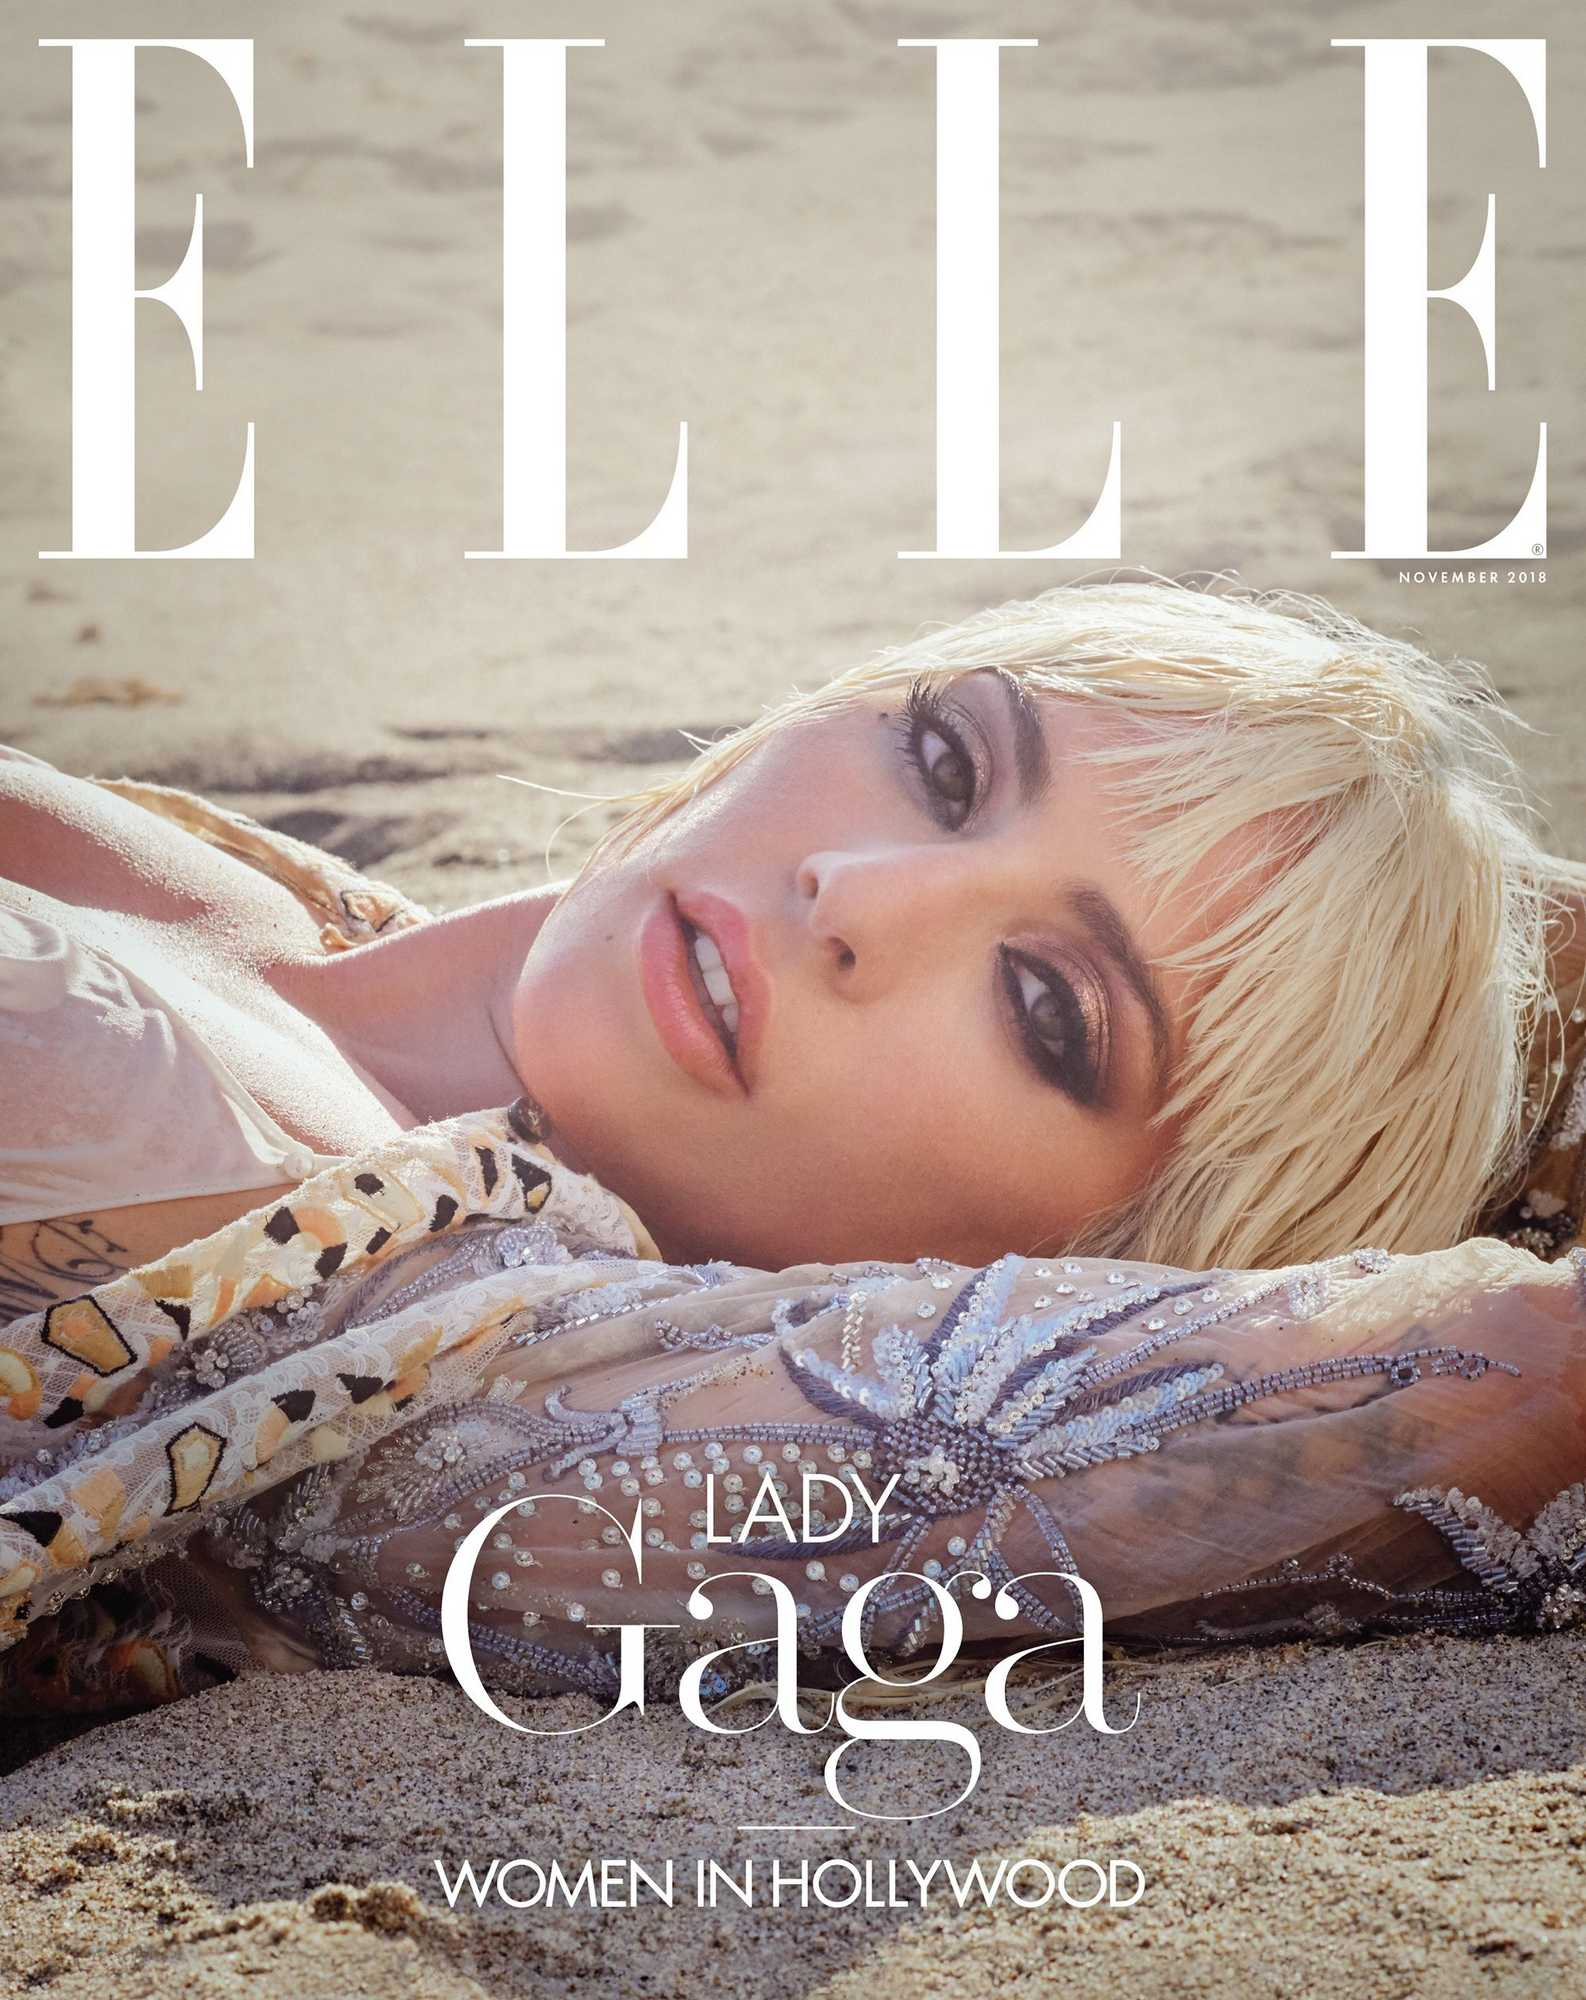 Lady-Gaga-The-Women-In-Hollywood-Issue-US-Elle-November-201896ab45997952724.jpg